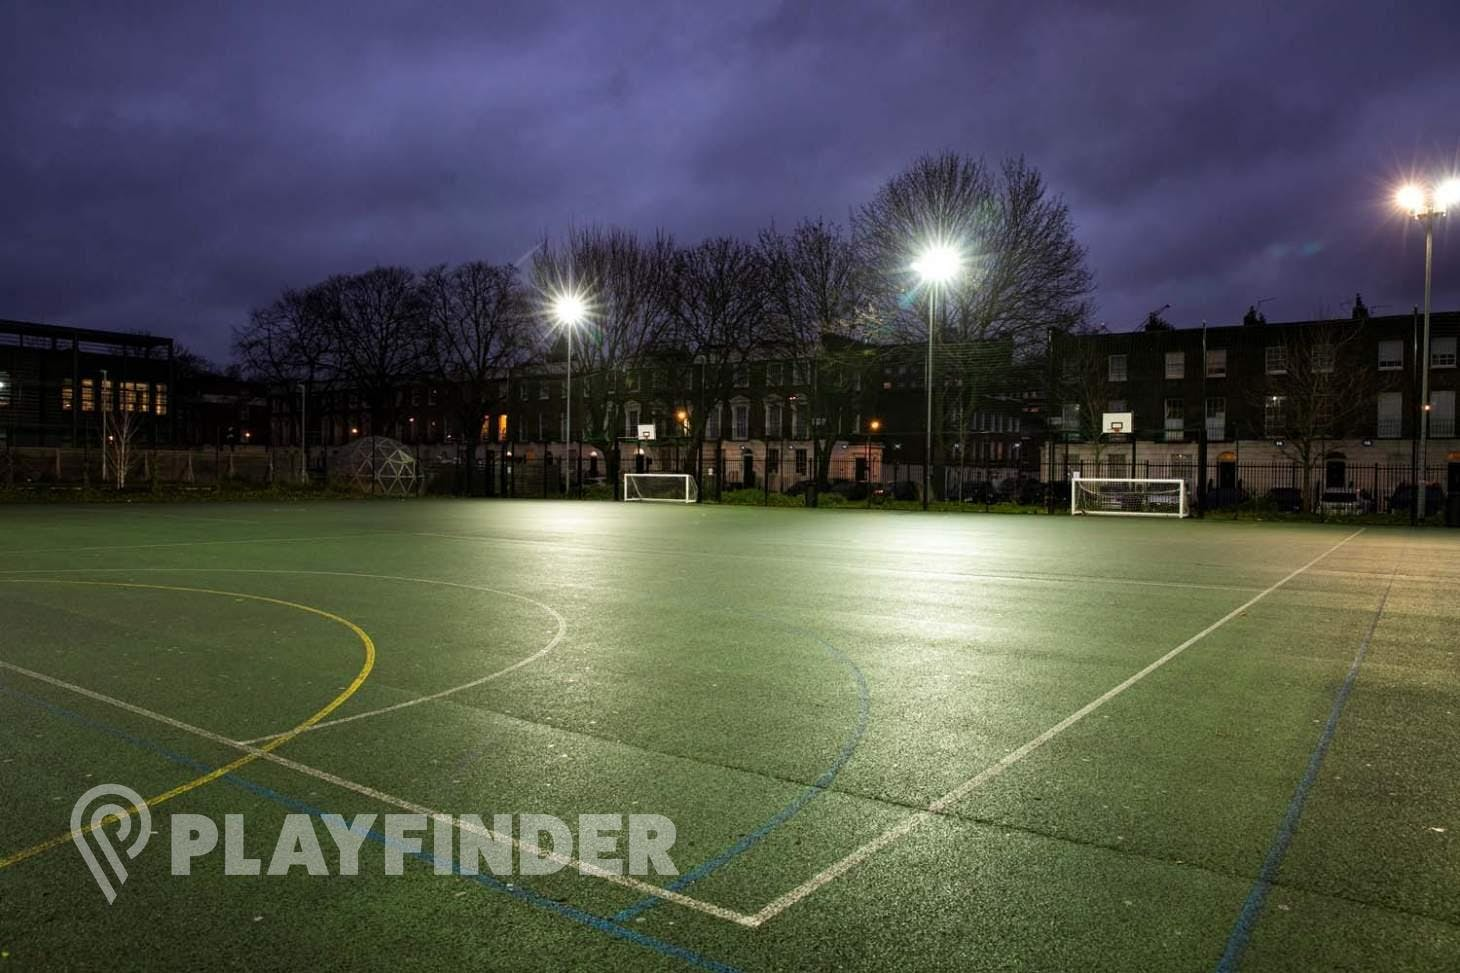 Somers Town Community Sports Centre 5 a side | Hard (macadam) football pitch